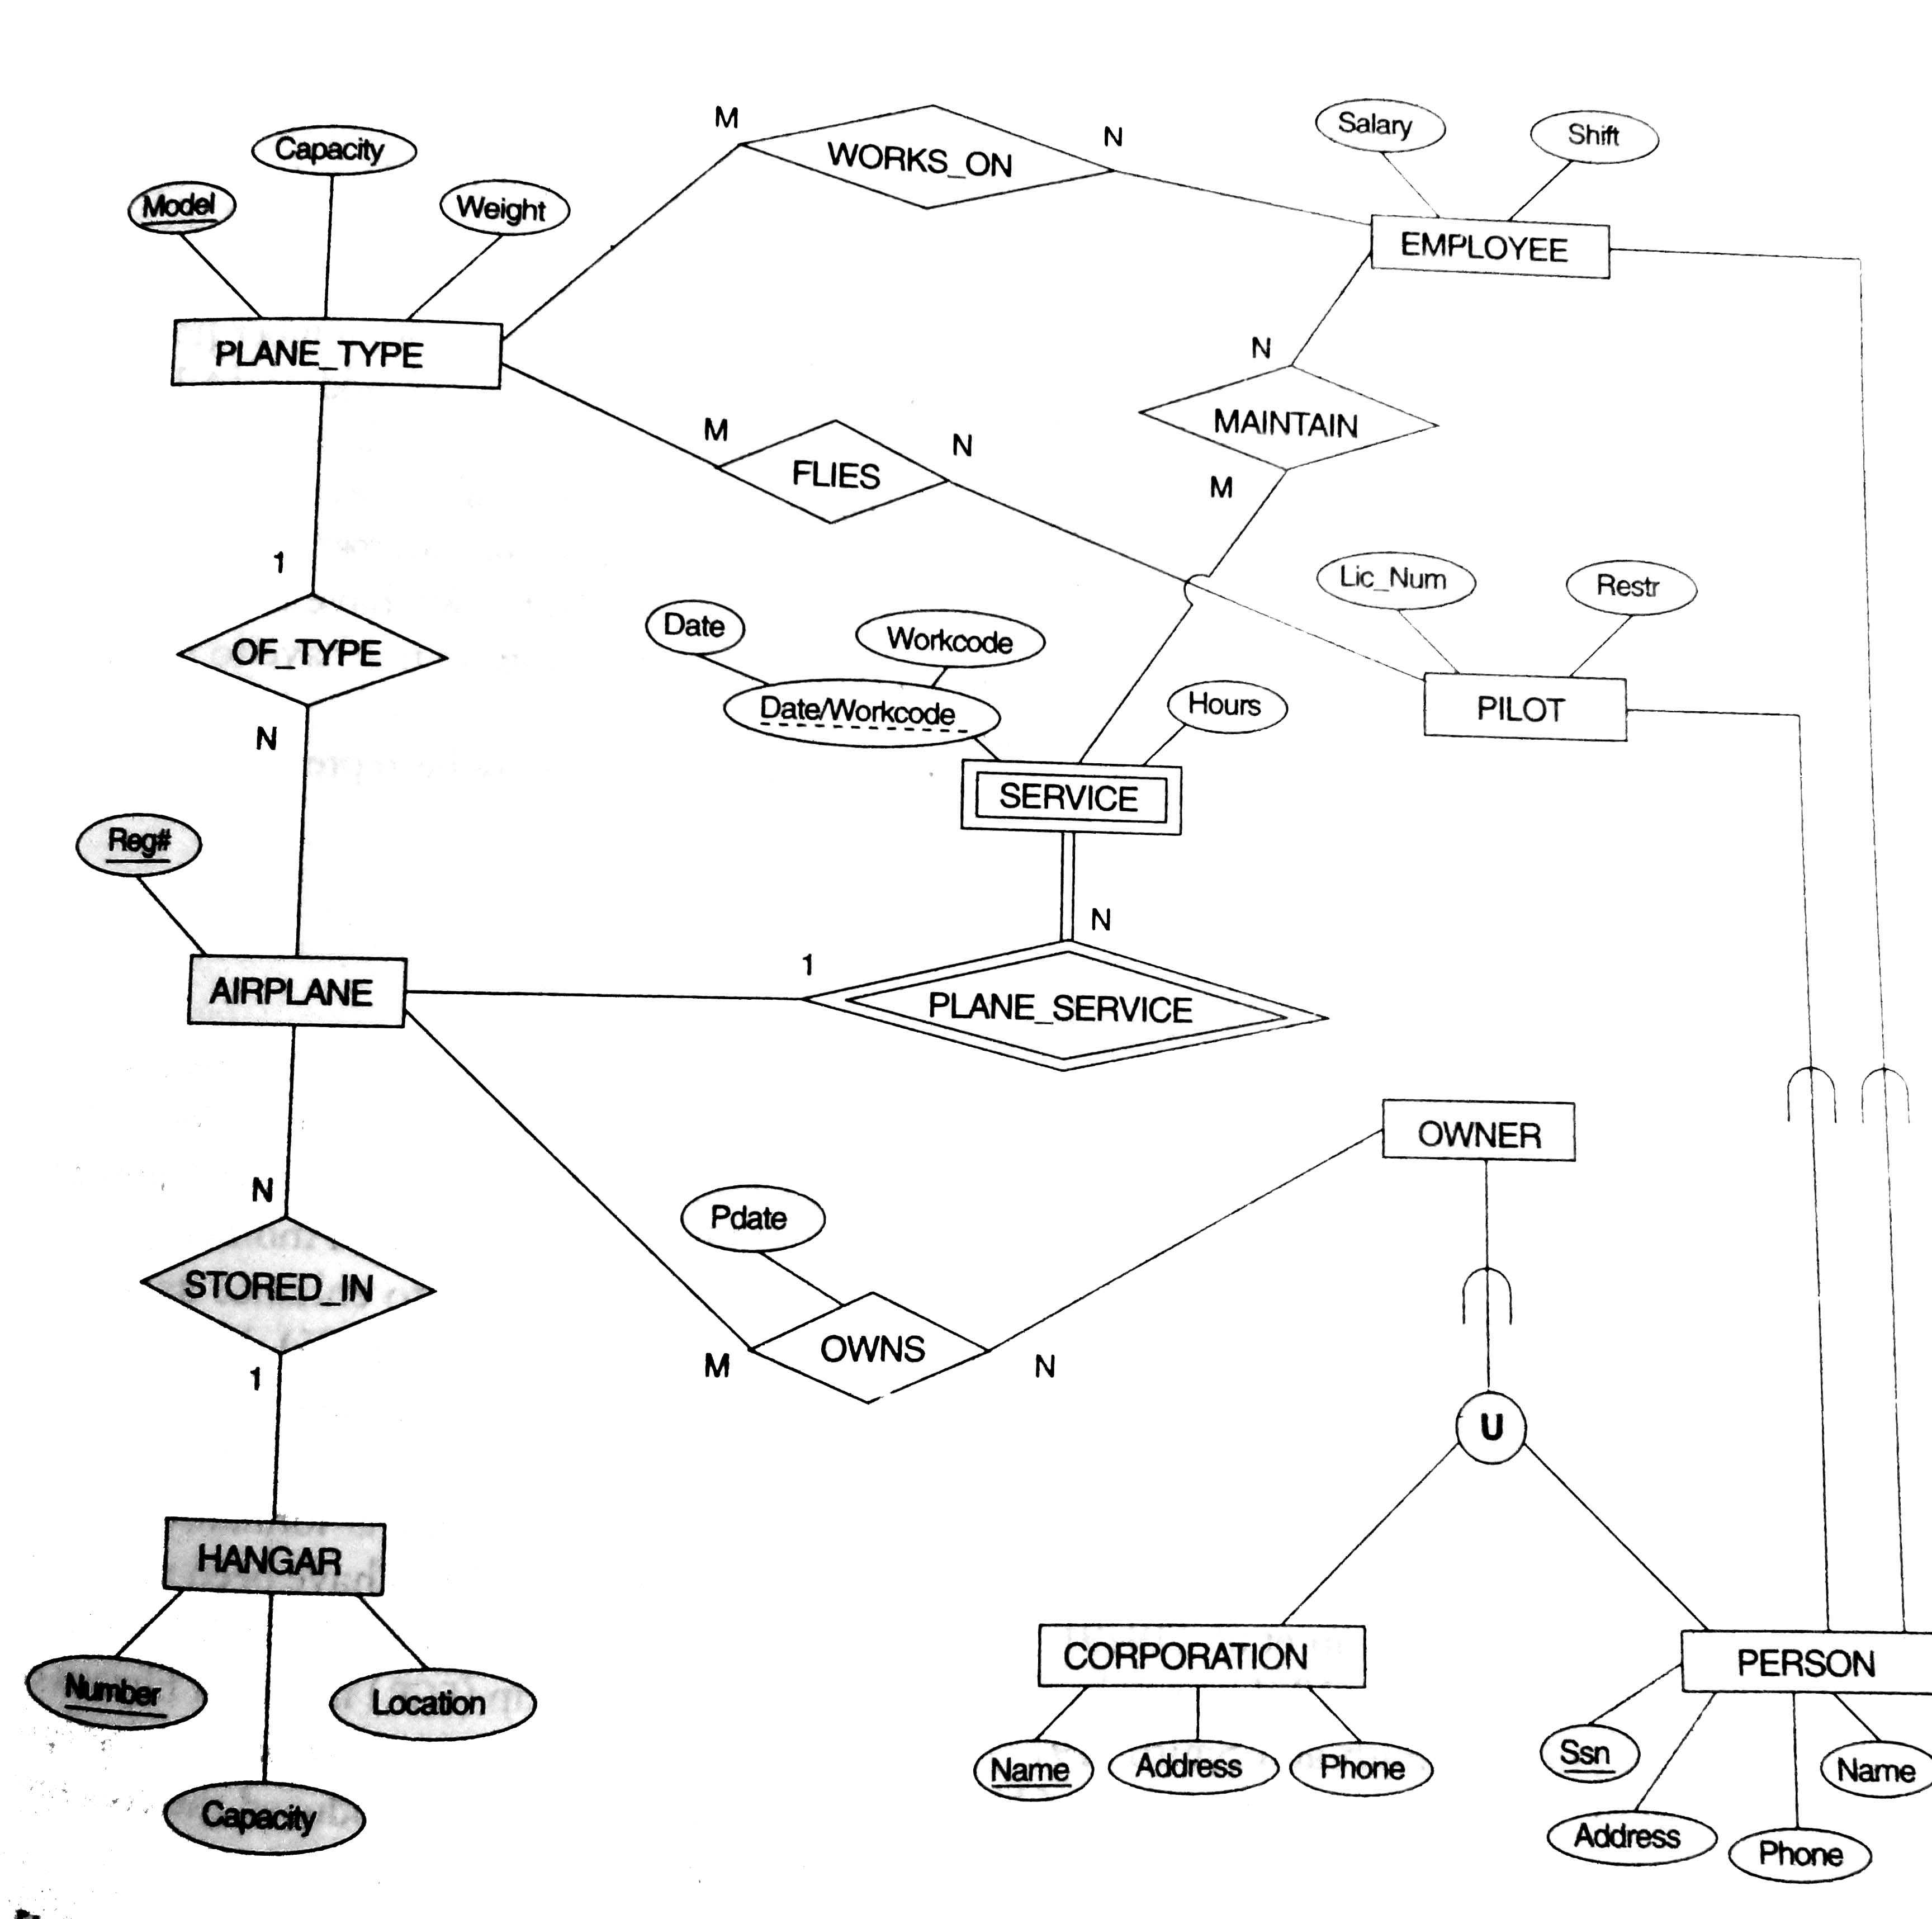 Roll No.18 An Eer Diagram For A Small Private Airport intended for Database Eer Diagram